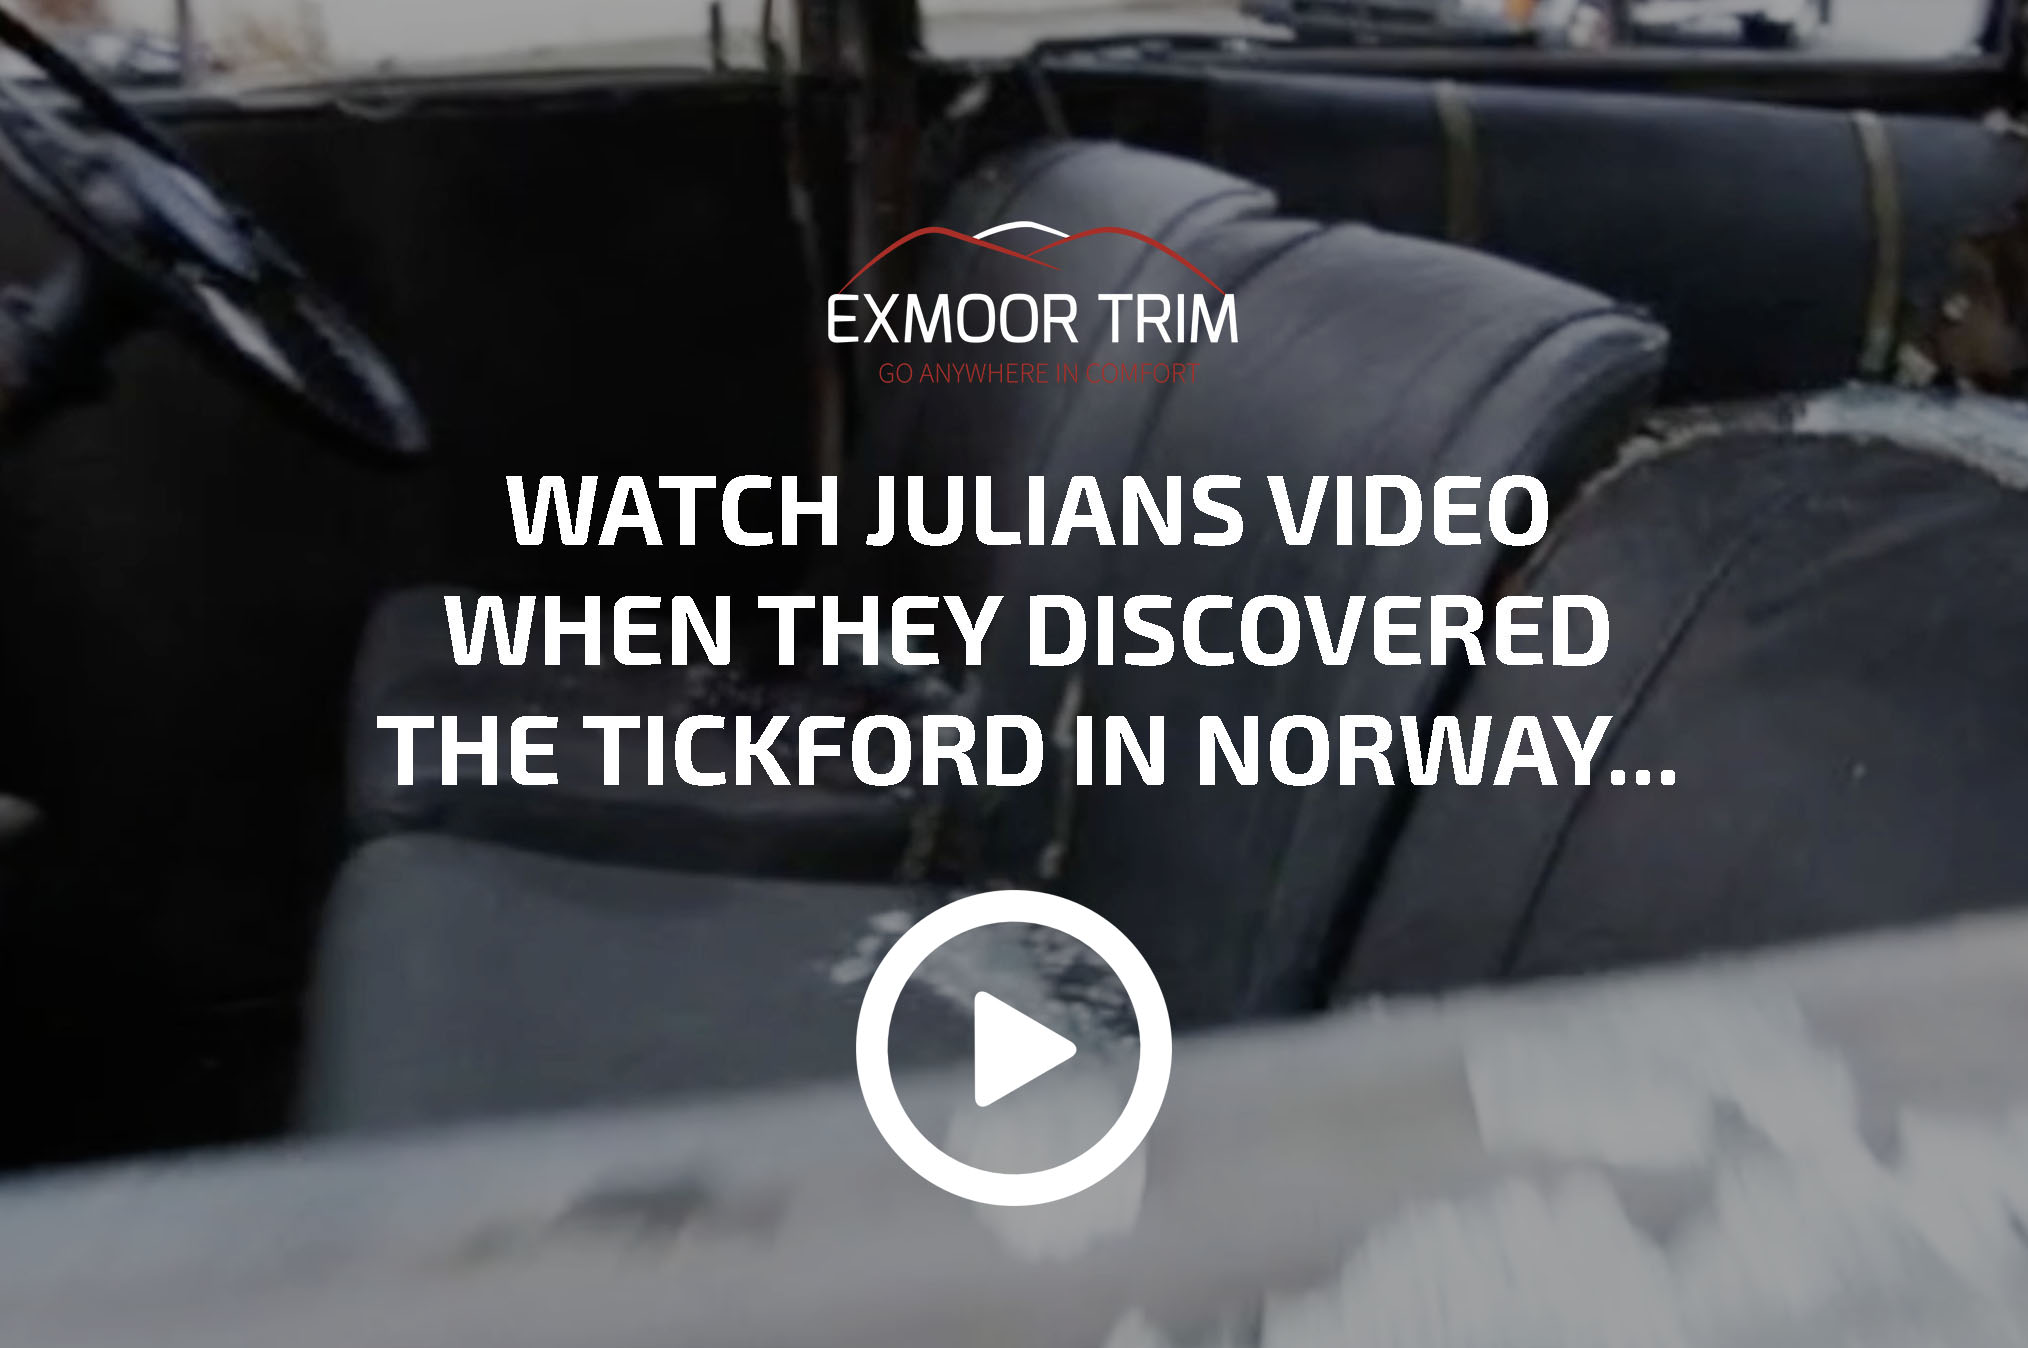 Exmoor Trim Blog - The Tickford Project | Exmoor Trim